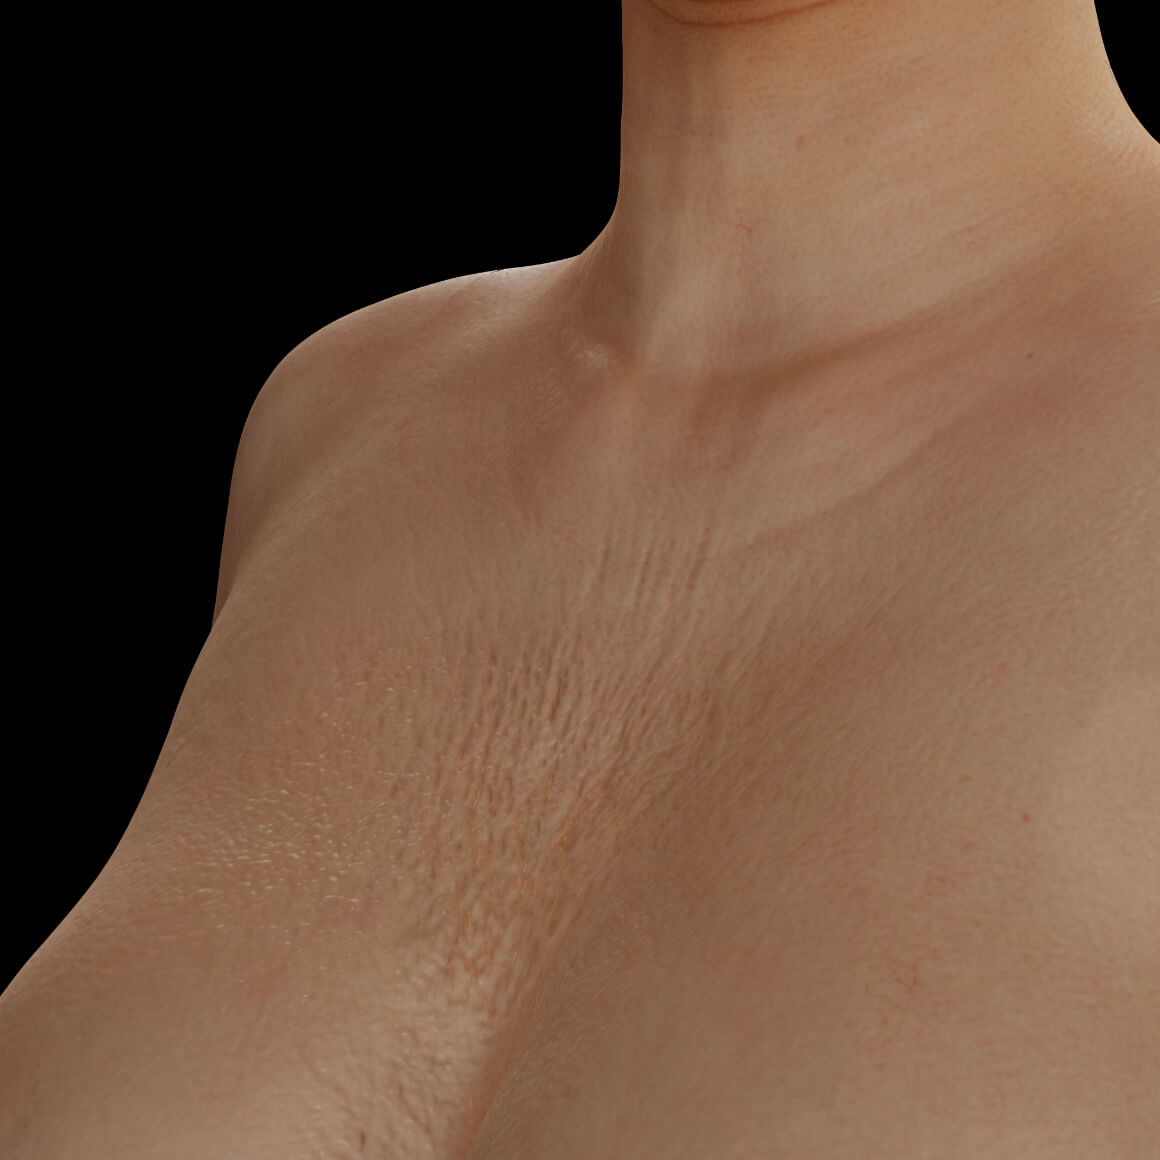 Female patient from Clinique Chloé positioned at an angle with sagging skin and wrinkles on the skin of the décolleté